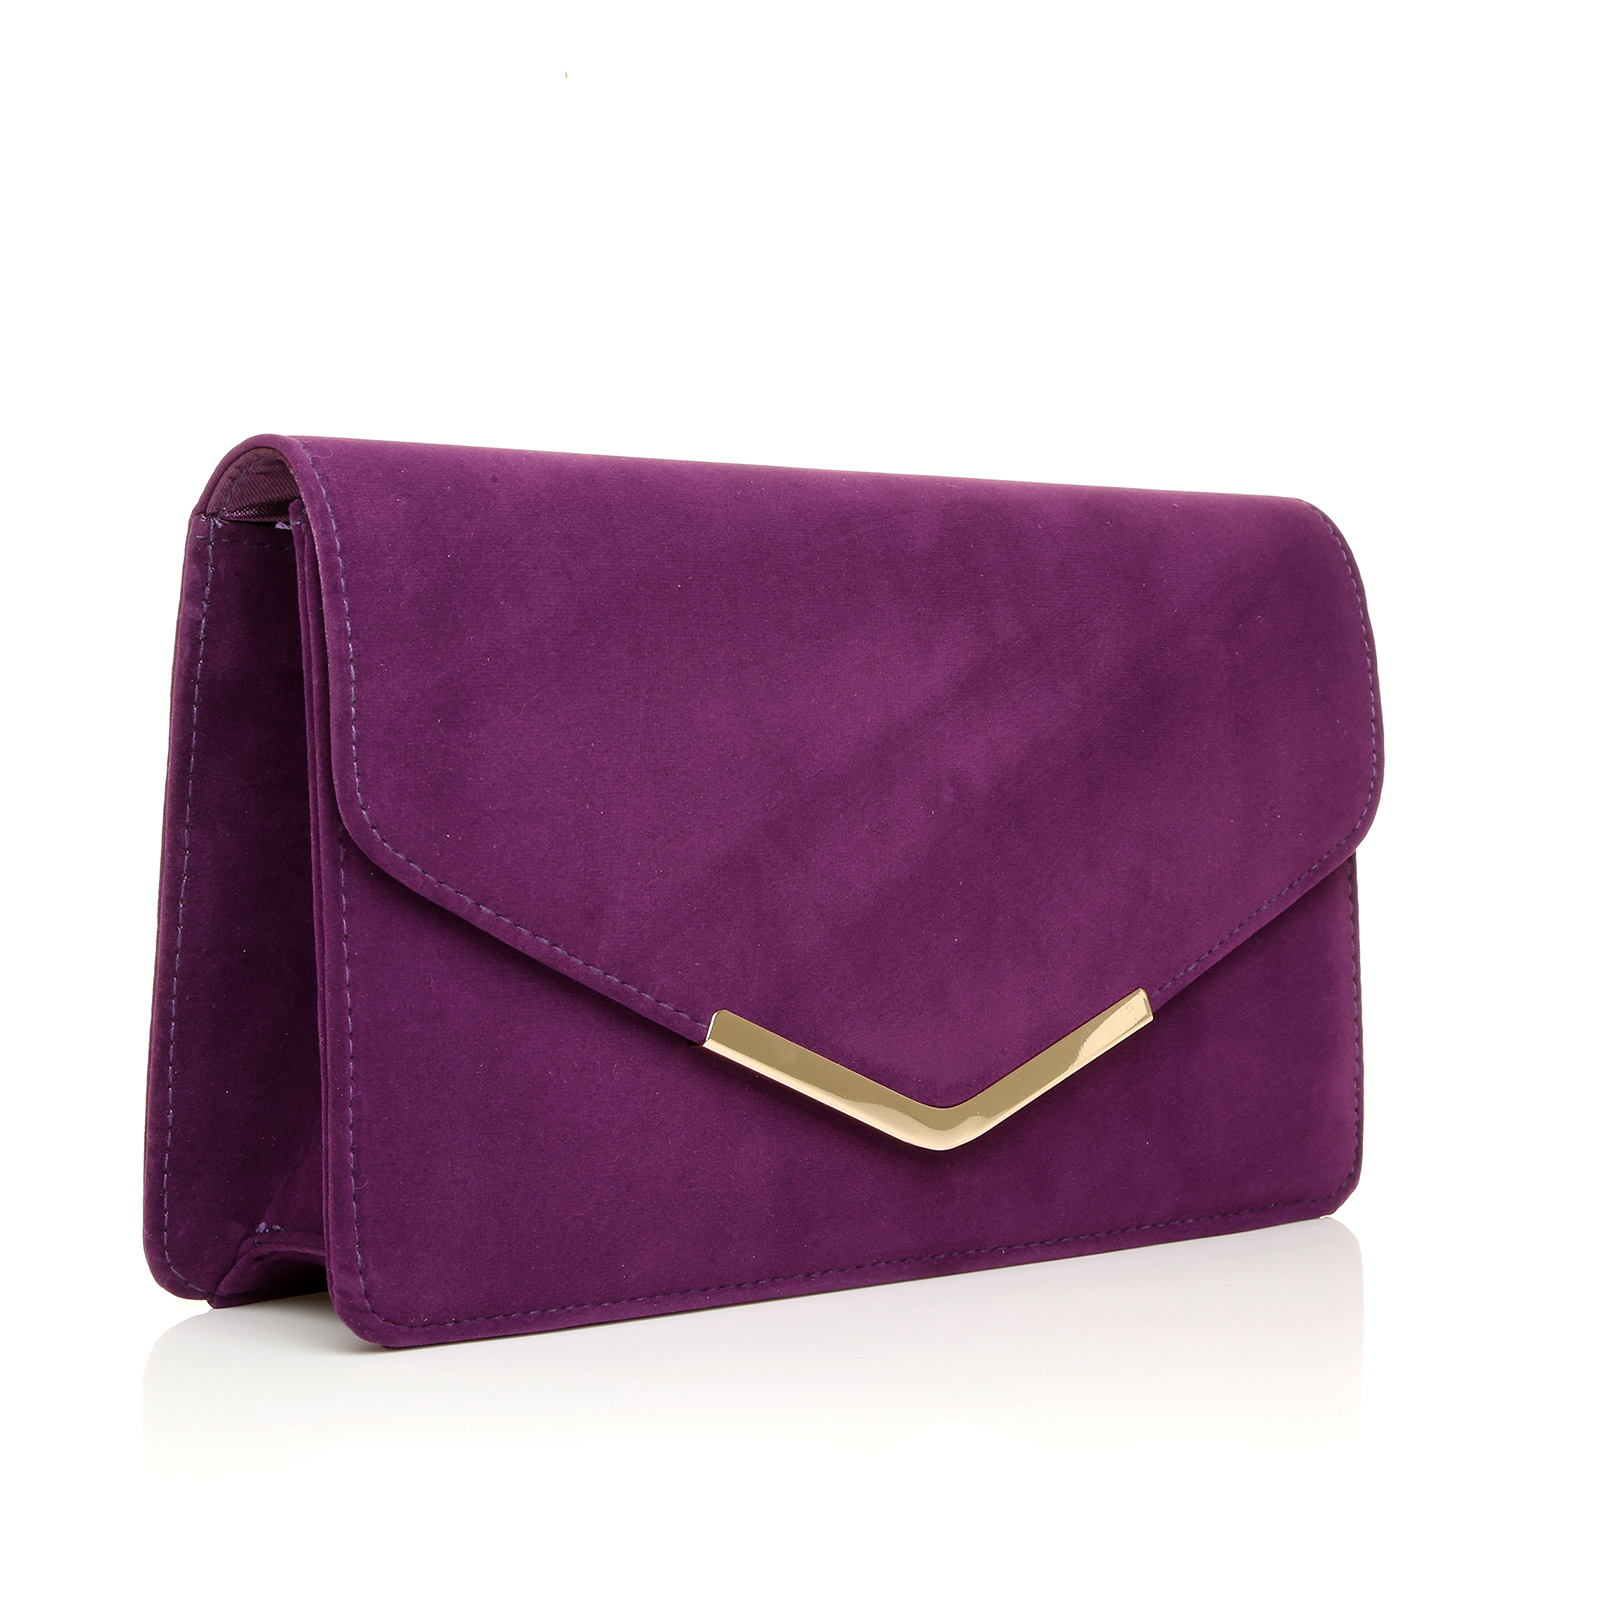 New Ladies Large Faux Leather Envelope Evening Clutch Bag ...